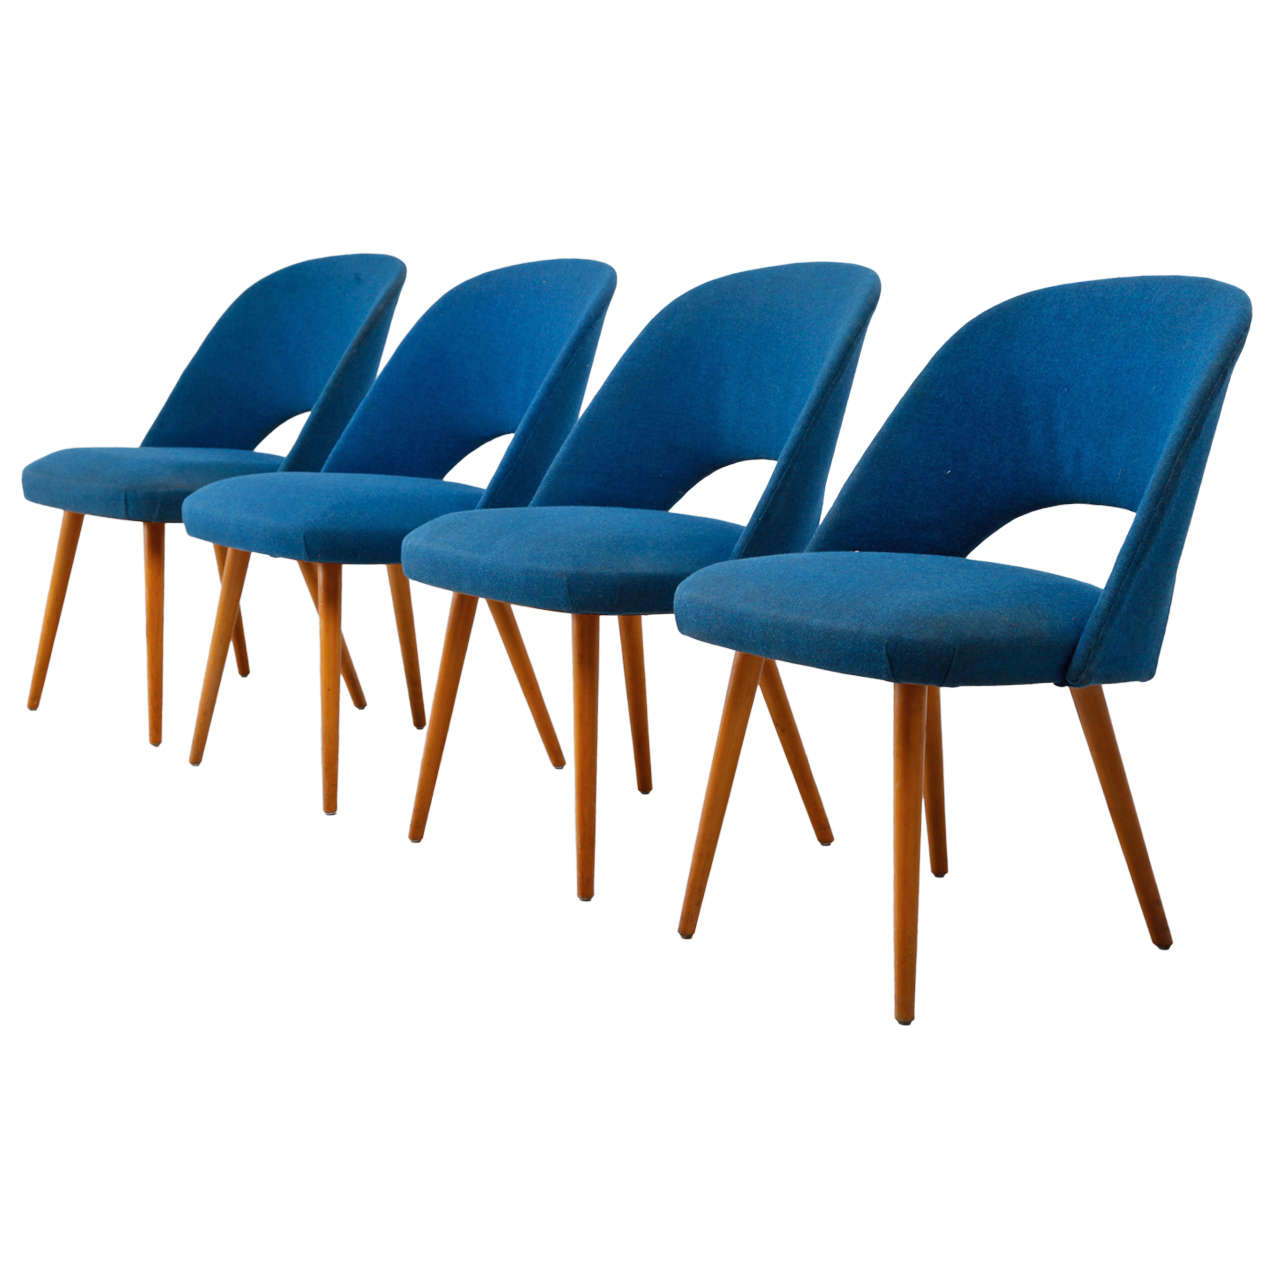 a set of four mid century modern chairs made by thonet